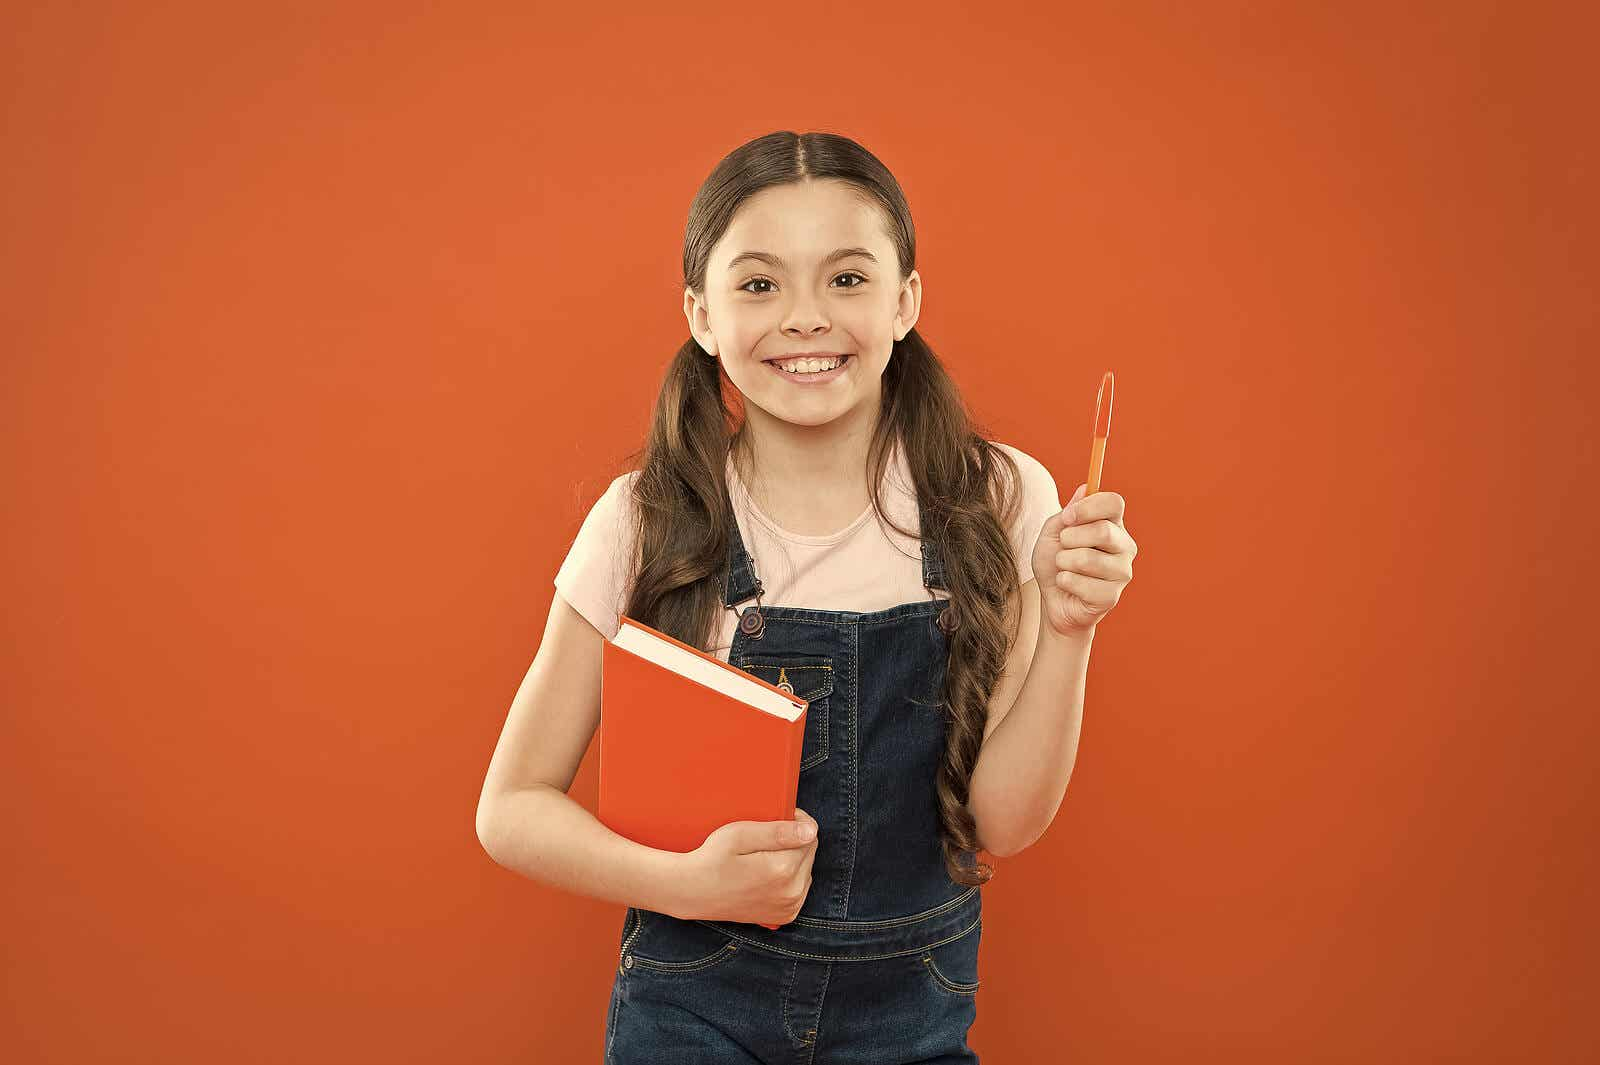 An elementary school student holding a planner and a pen.